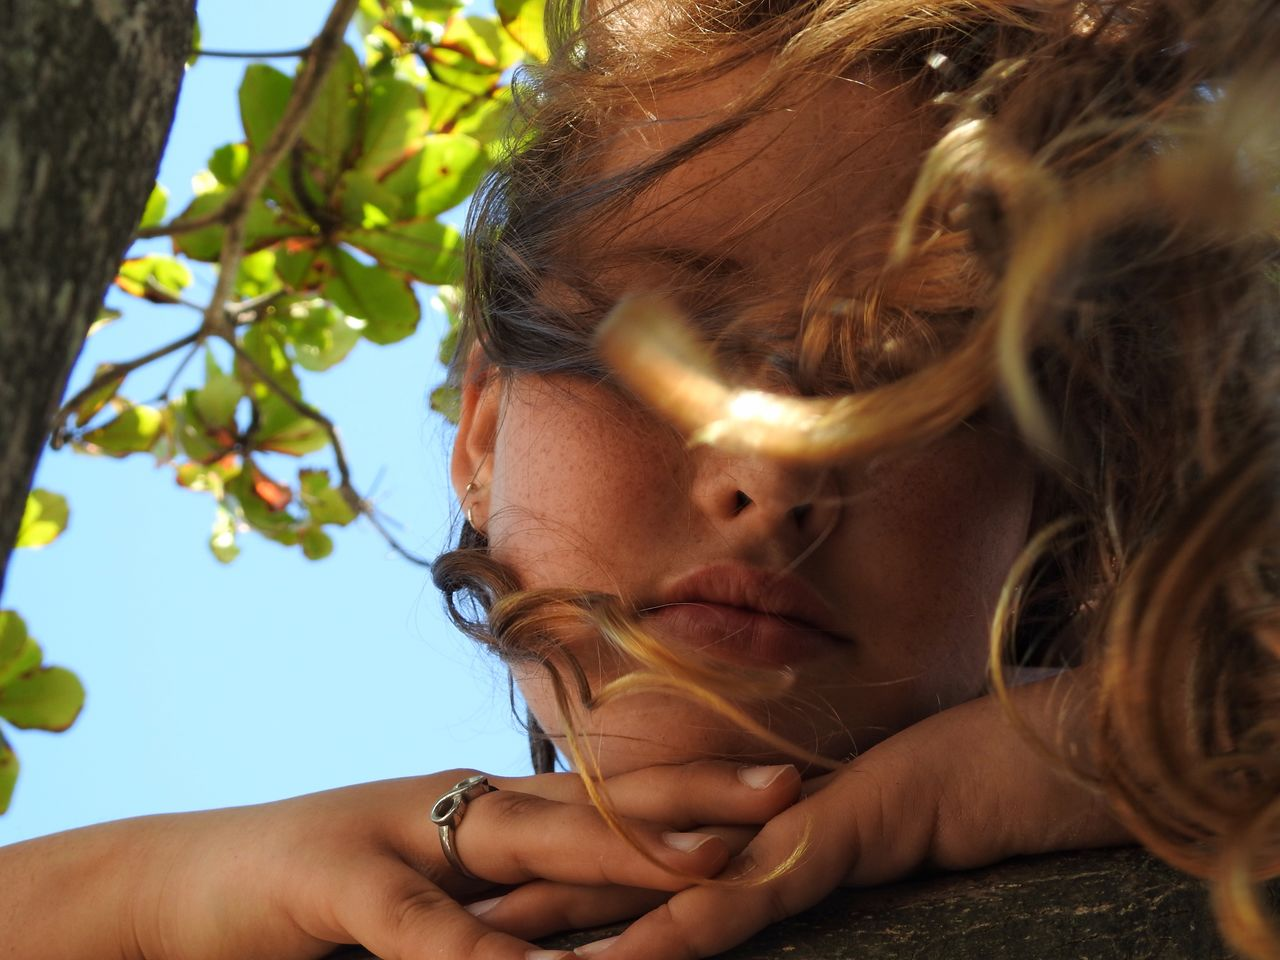 Close-Up Of Girl Against Tree